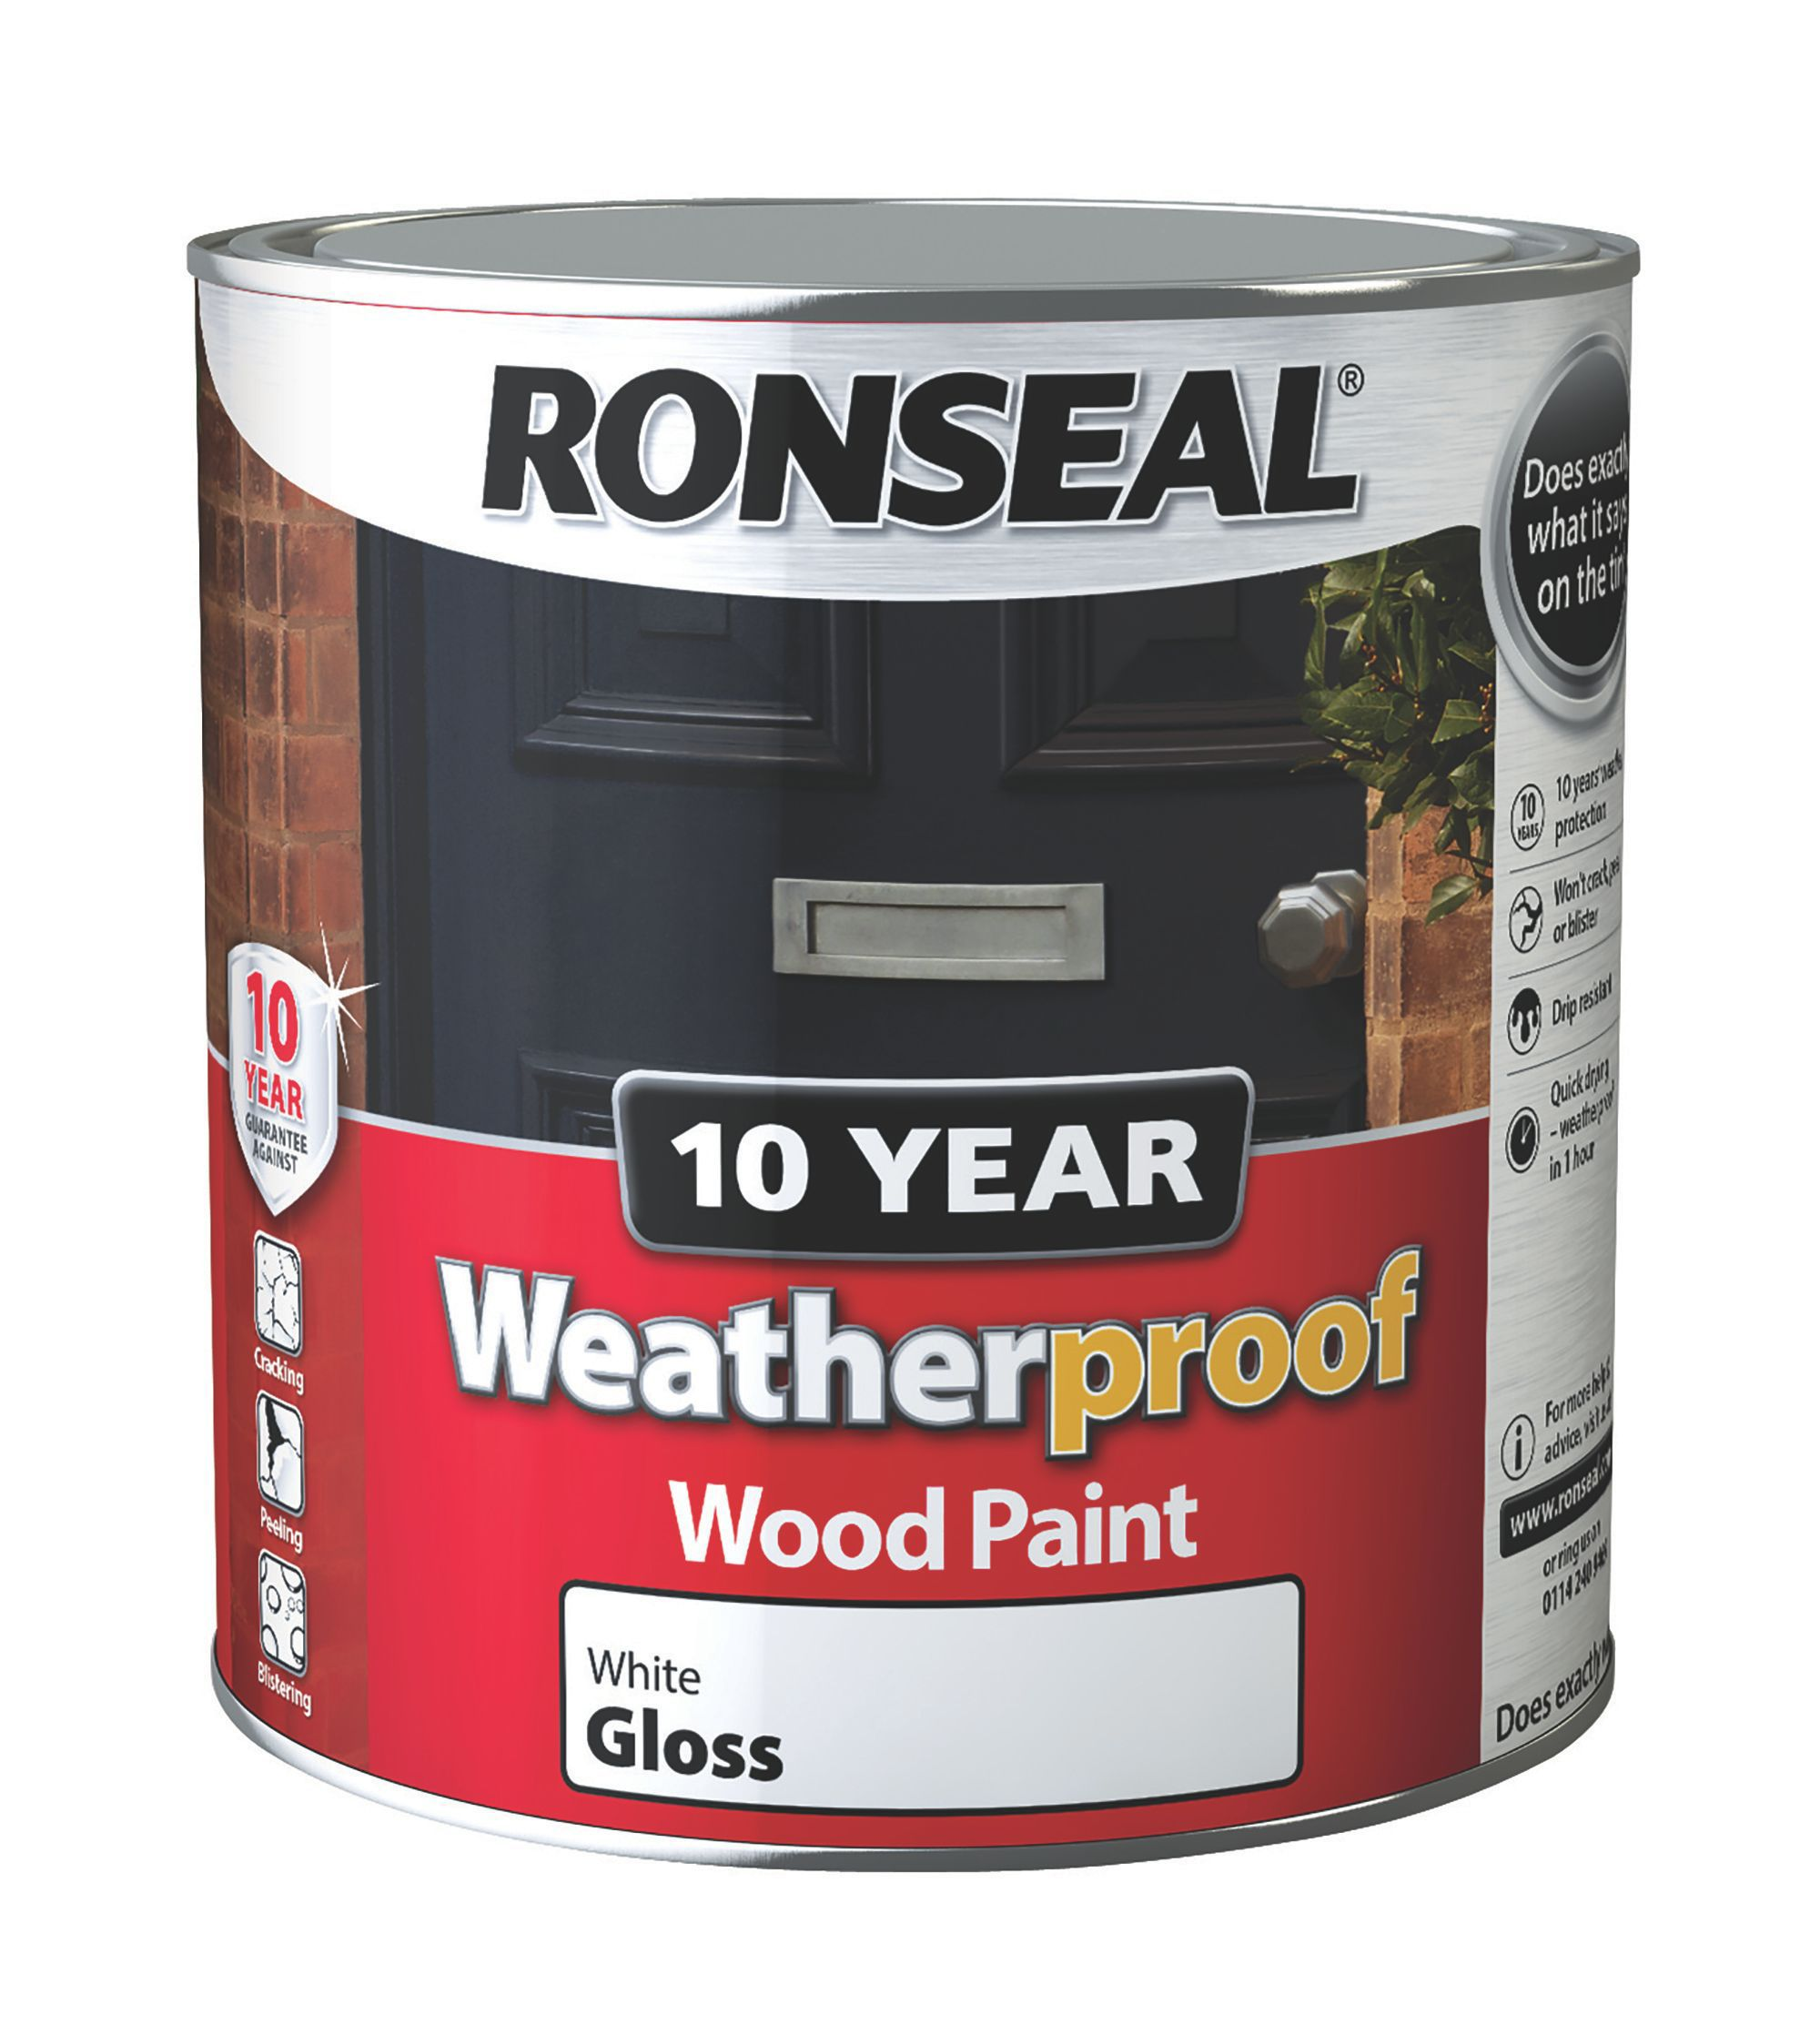 ronseal 10 year weatherproof pure brilliant white gloss wood paint 2 5l departments diy at b q